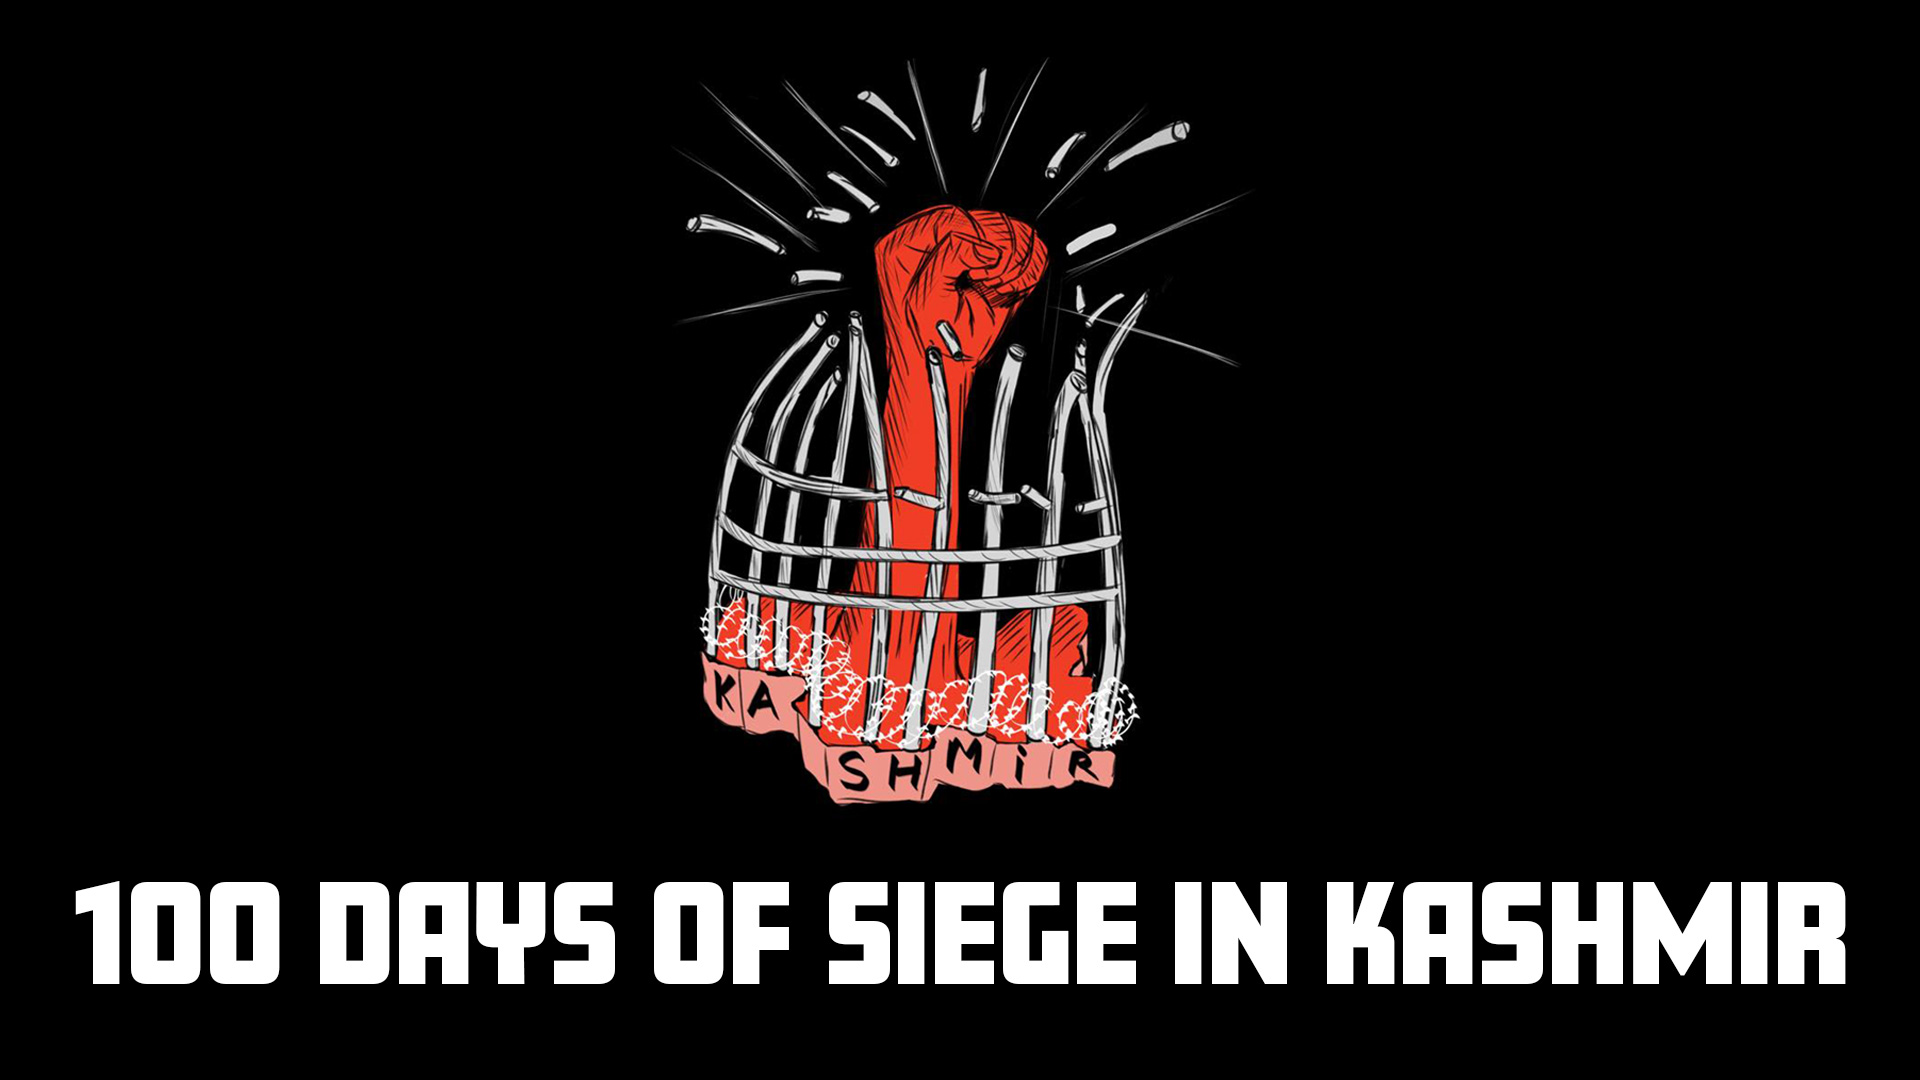 100 DAYS OF SIEGE IN KASHMIR